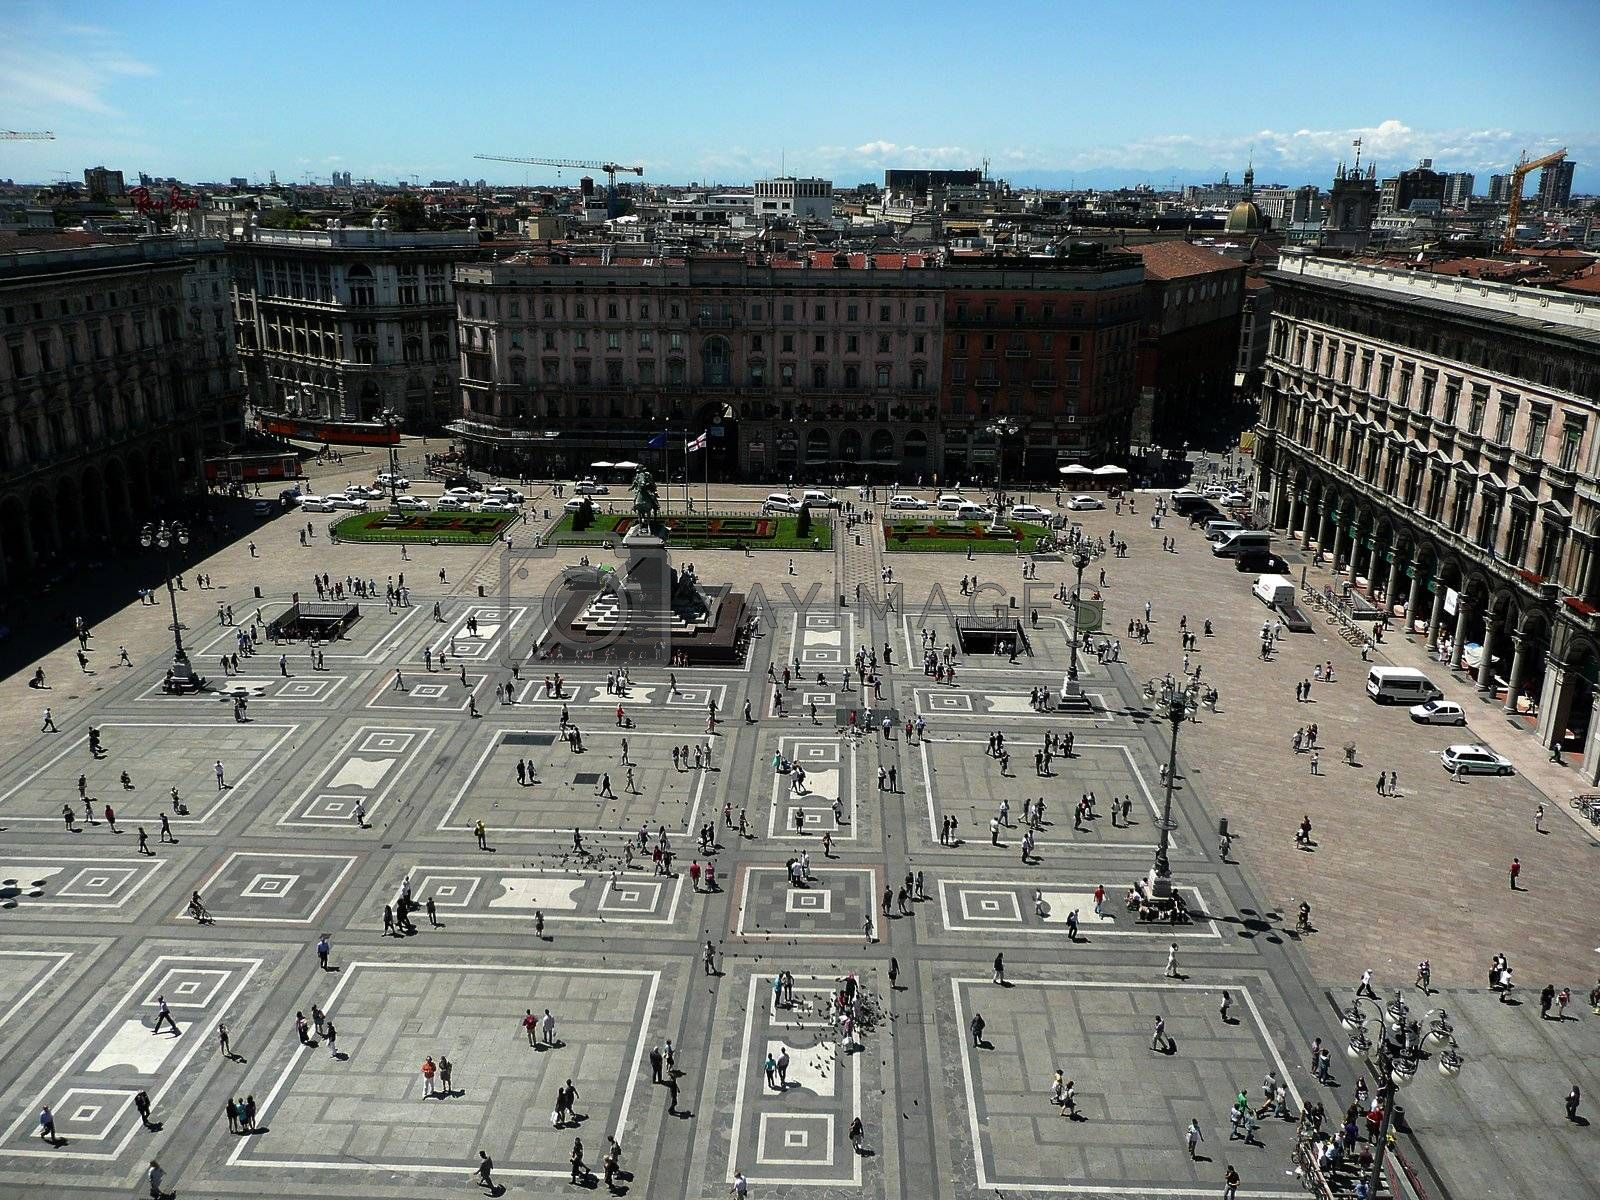 Aerial view of Piazza del Duomo, Milan Cathedral, Italy